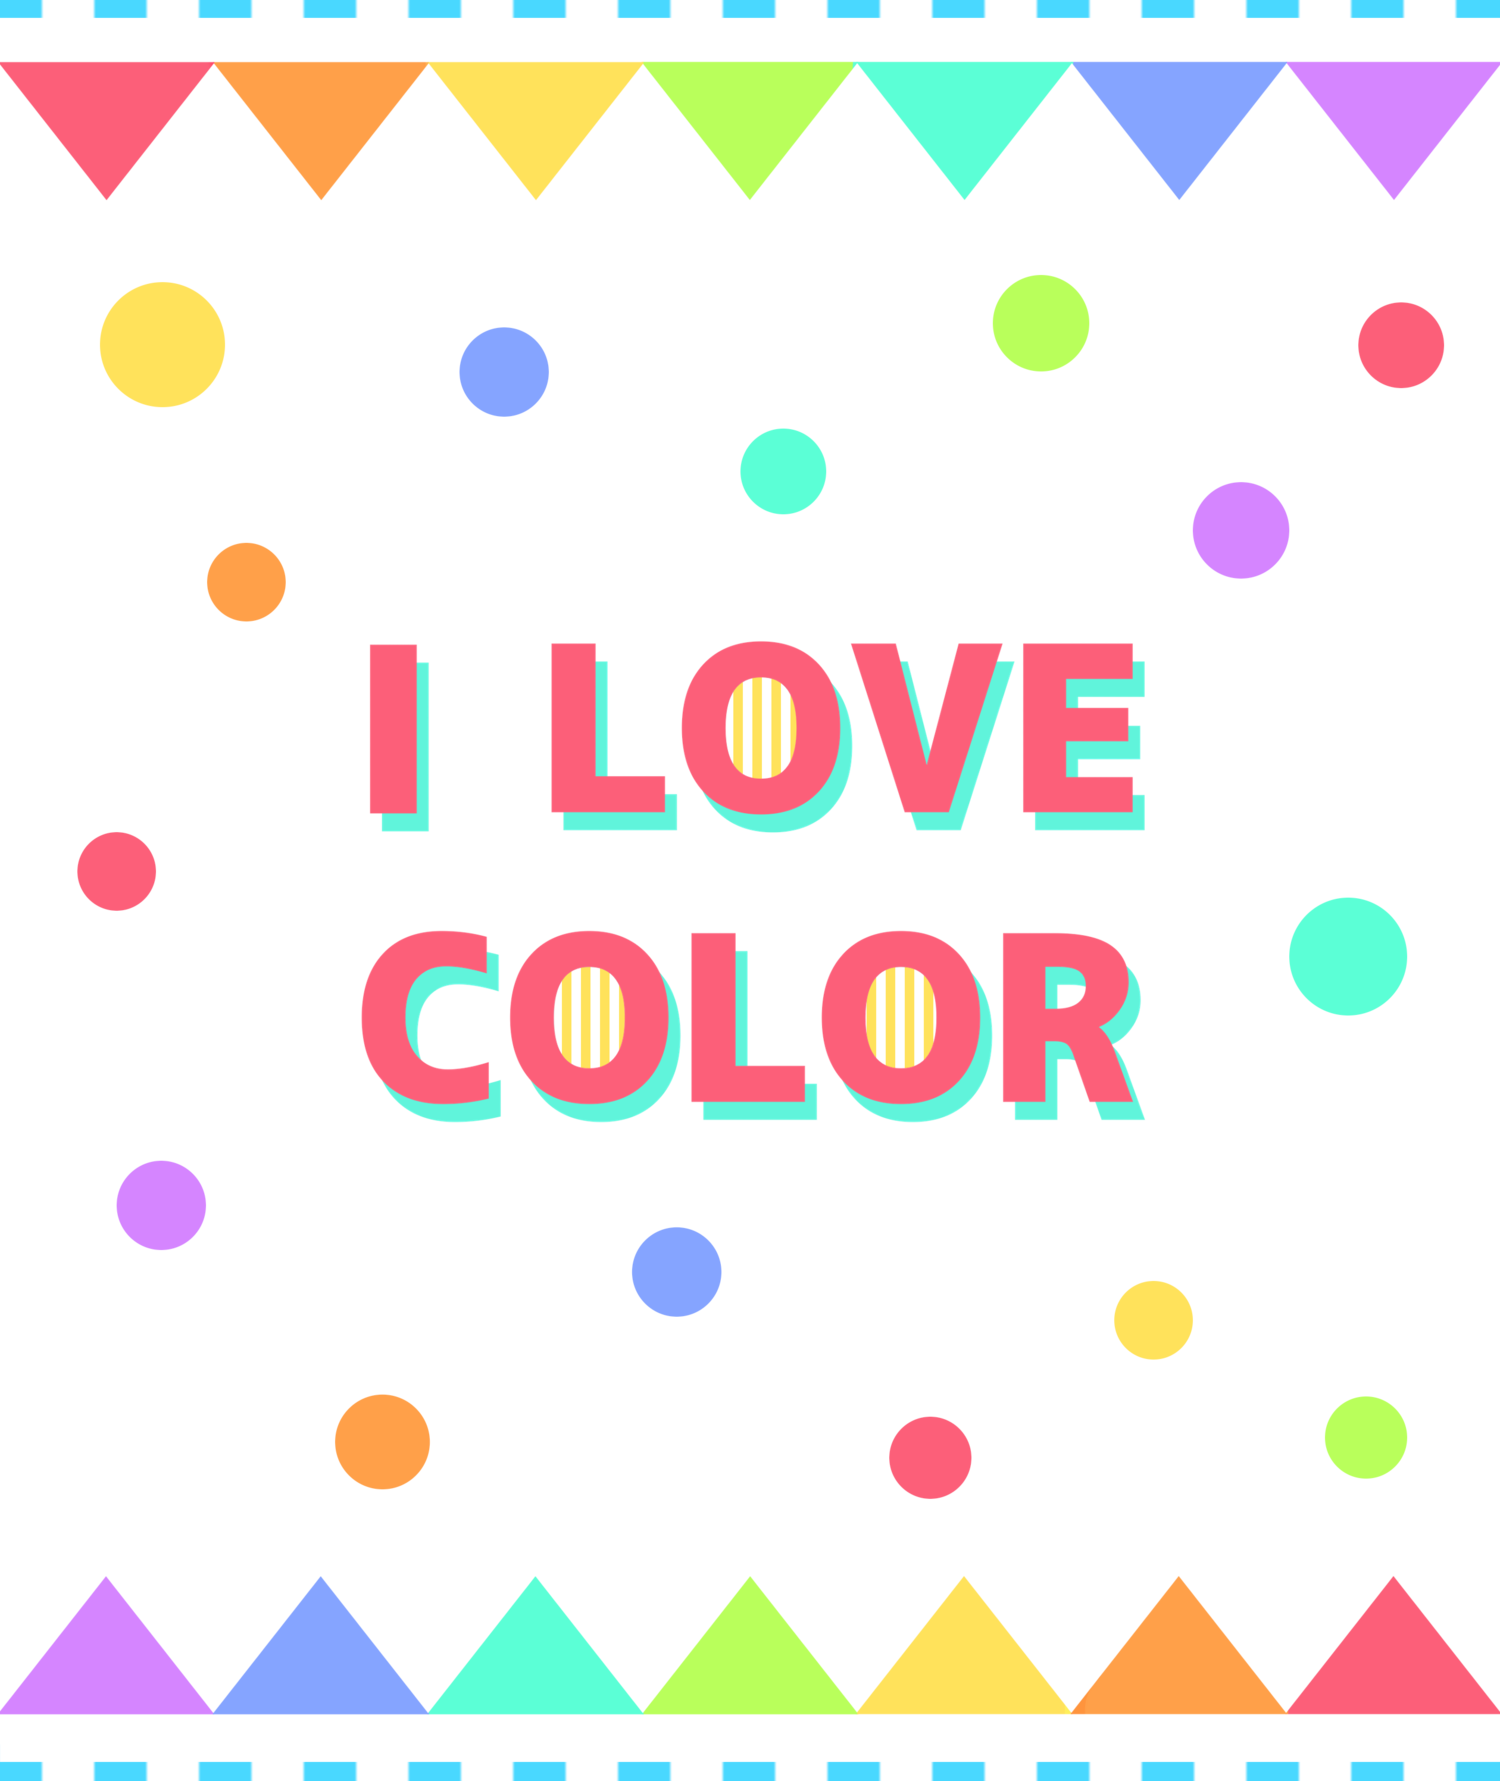 【I LOVE COLOR】